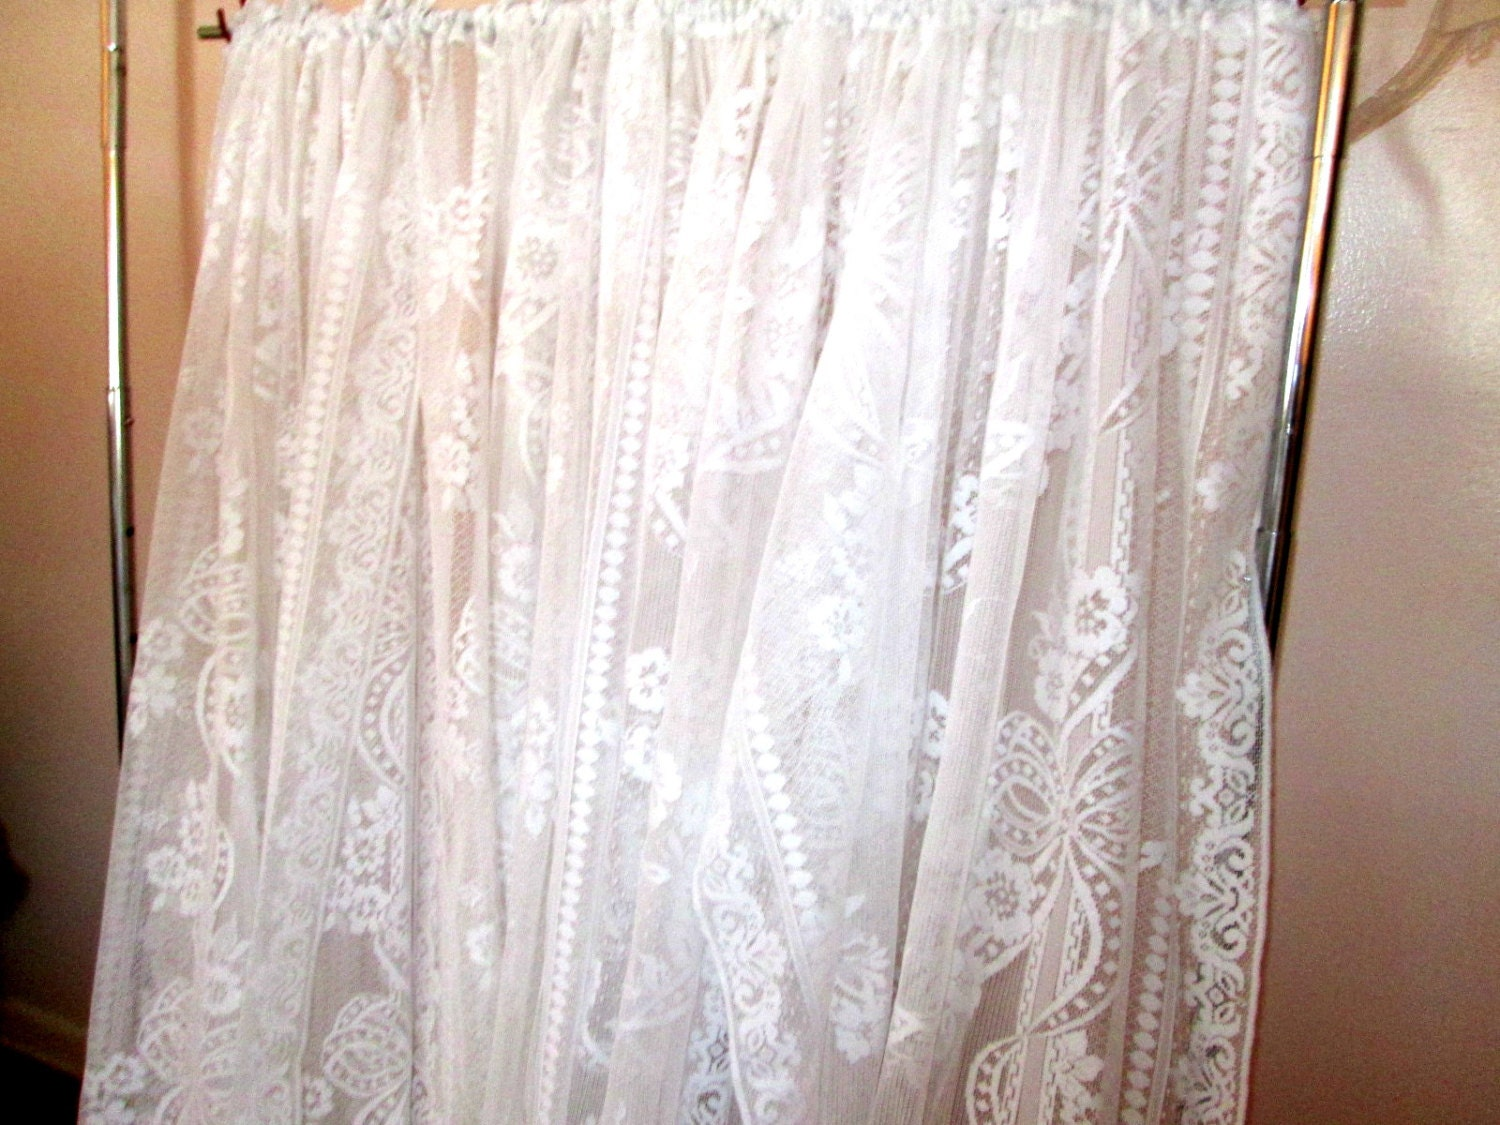 drapes 4 panels vintage lace curtains white on by myshop1020